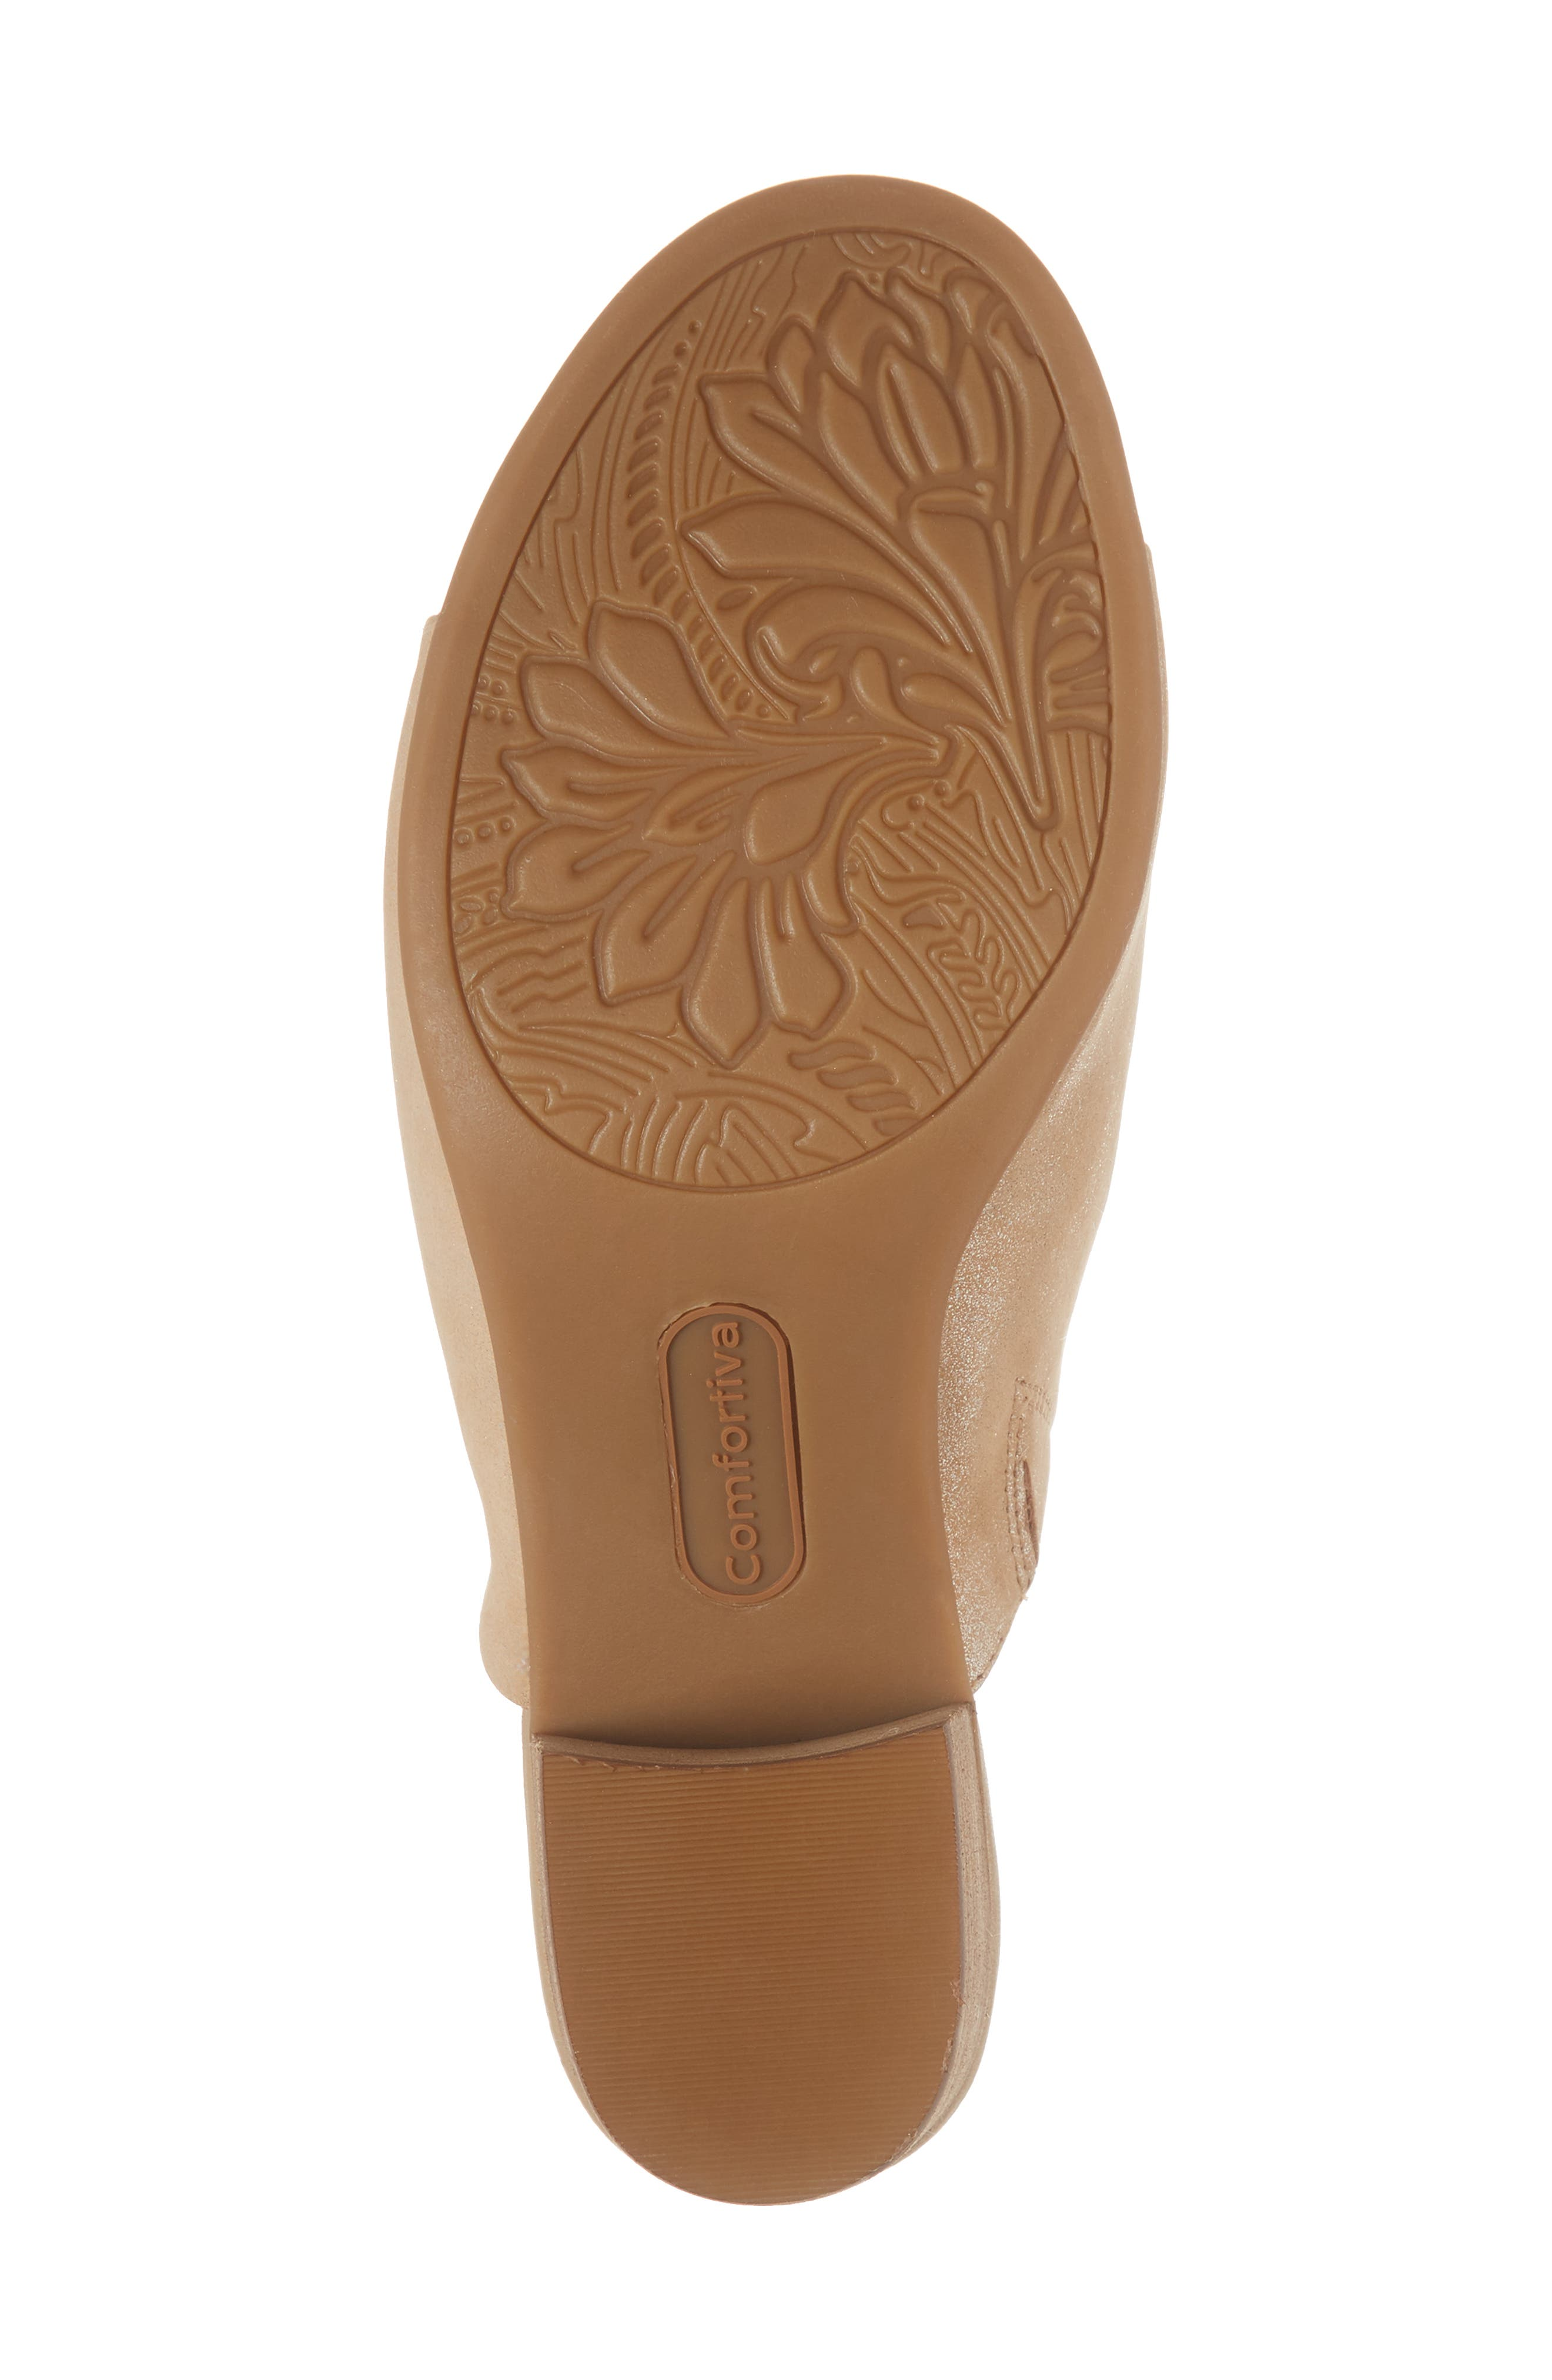 Anabella Sandal,                             Alternate thumbnail 6, color,                             Natural Leather